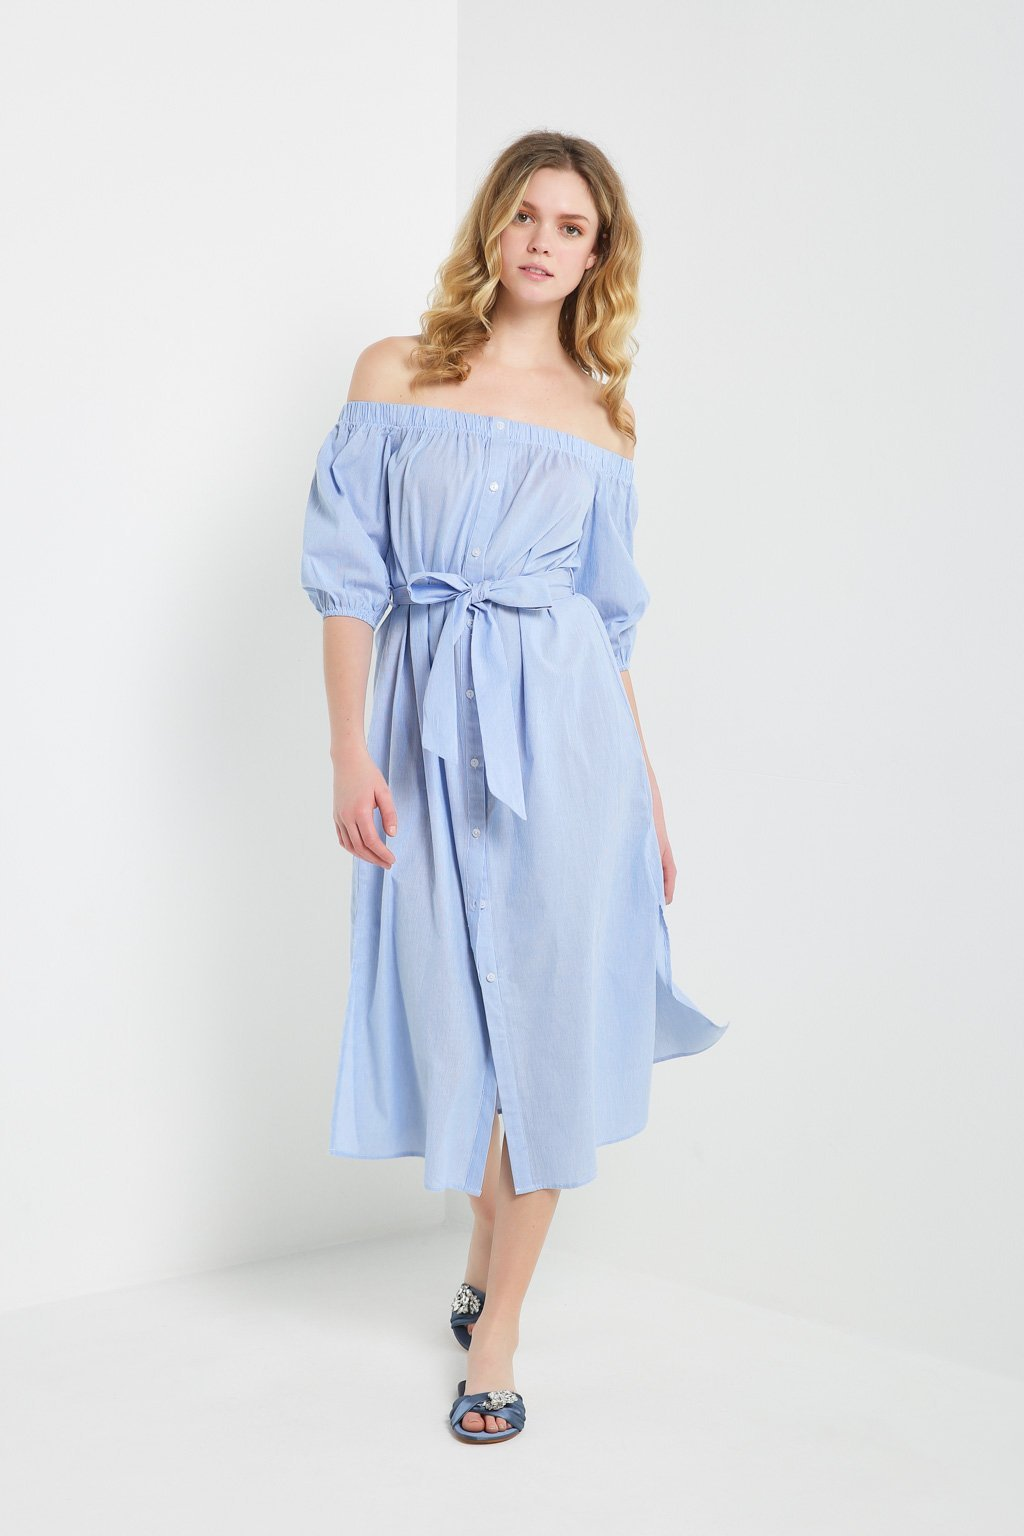 Poshsquare Dress S / Light Blue Maripose Striped Off the Shoulder Maxi Dress